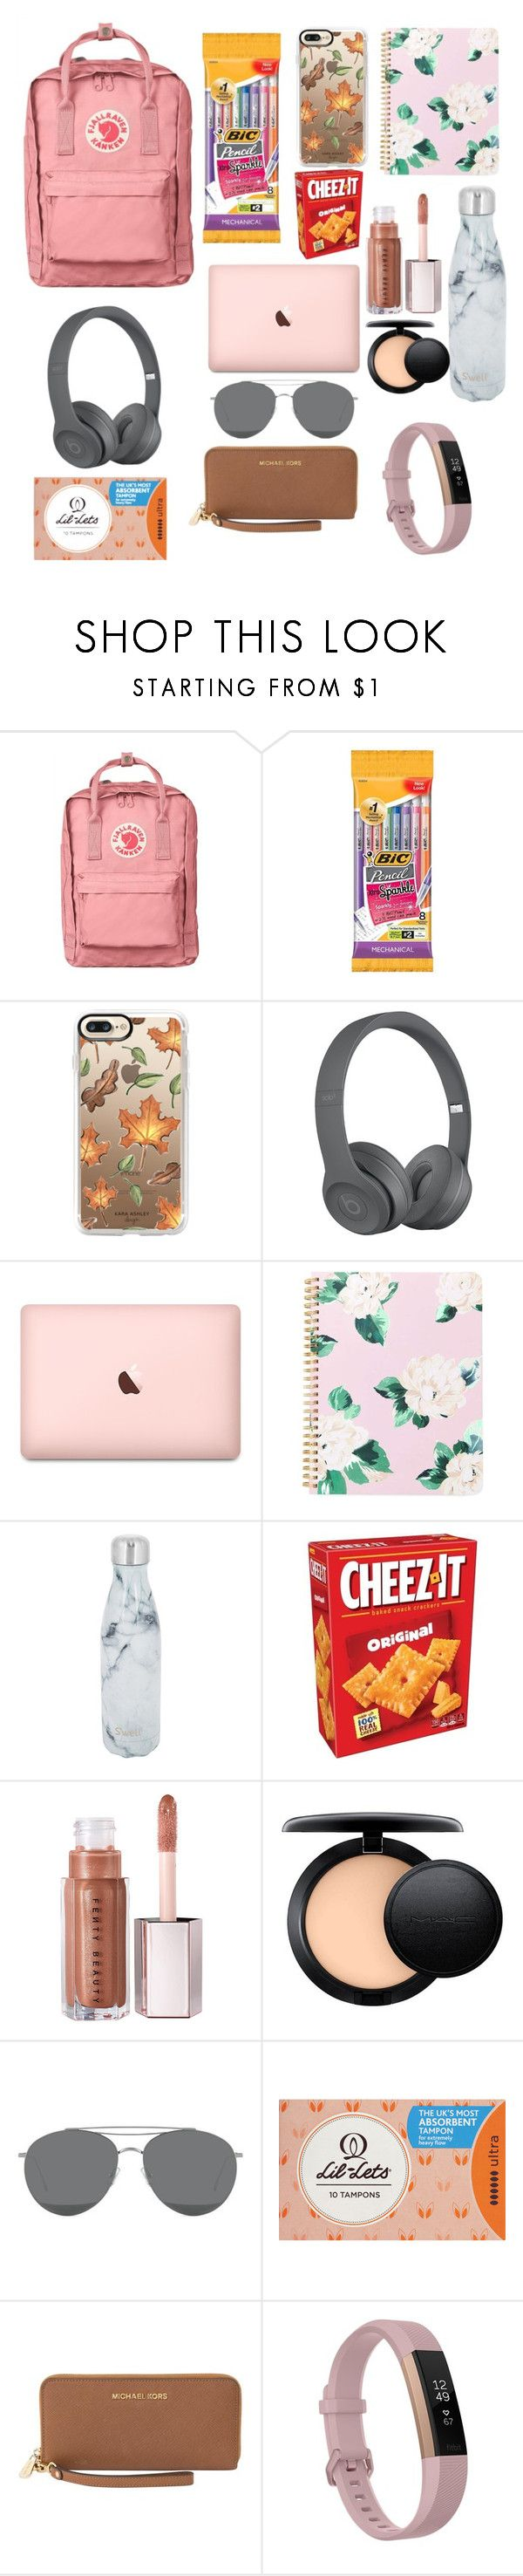 """what's in my bag"" by fashionqueen0220 ❤ liked on Polyvore featuring Fjällräven, Casetify, ban.do, S'well, MAC Cosmetics, Gentle Monster, Michael Kors and Fitbit"